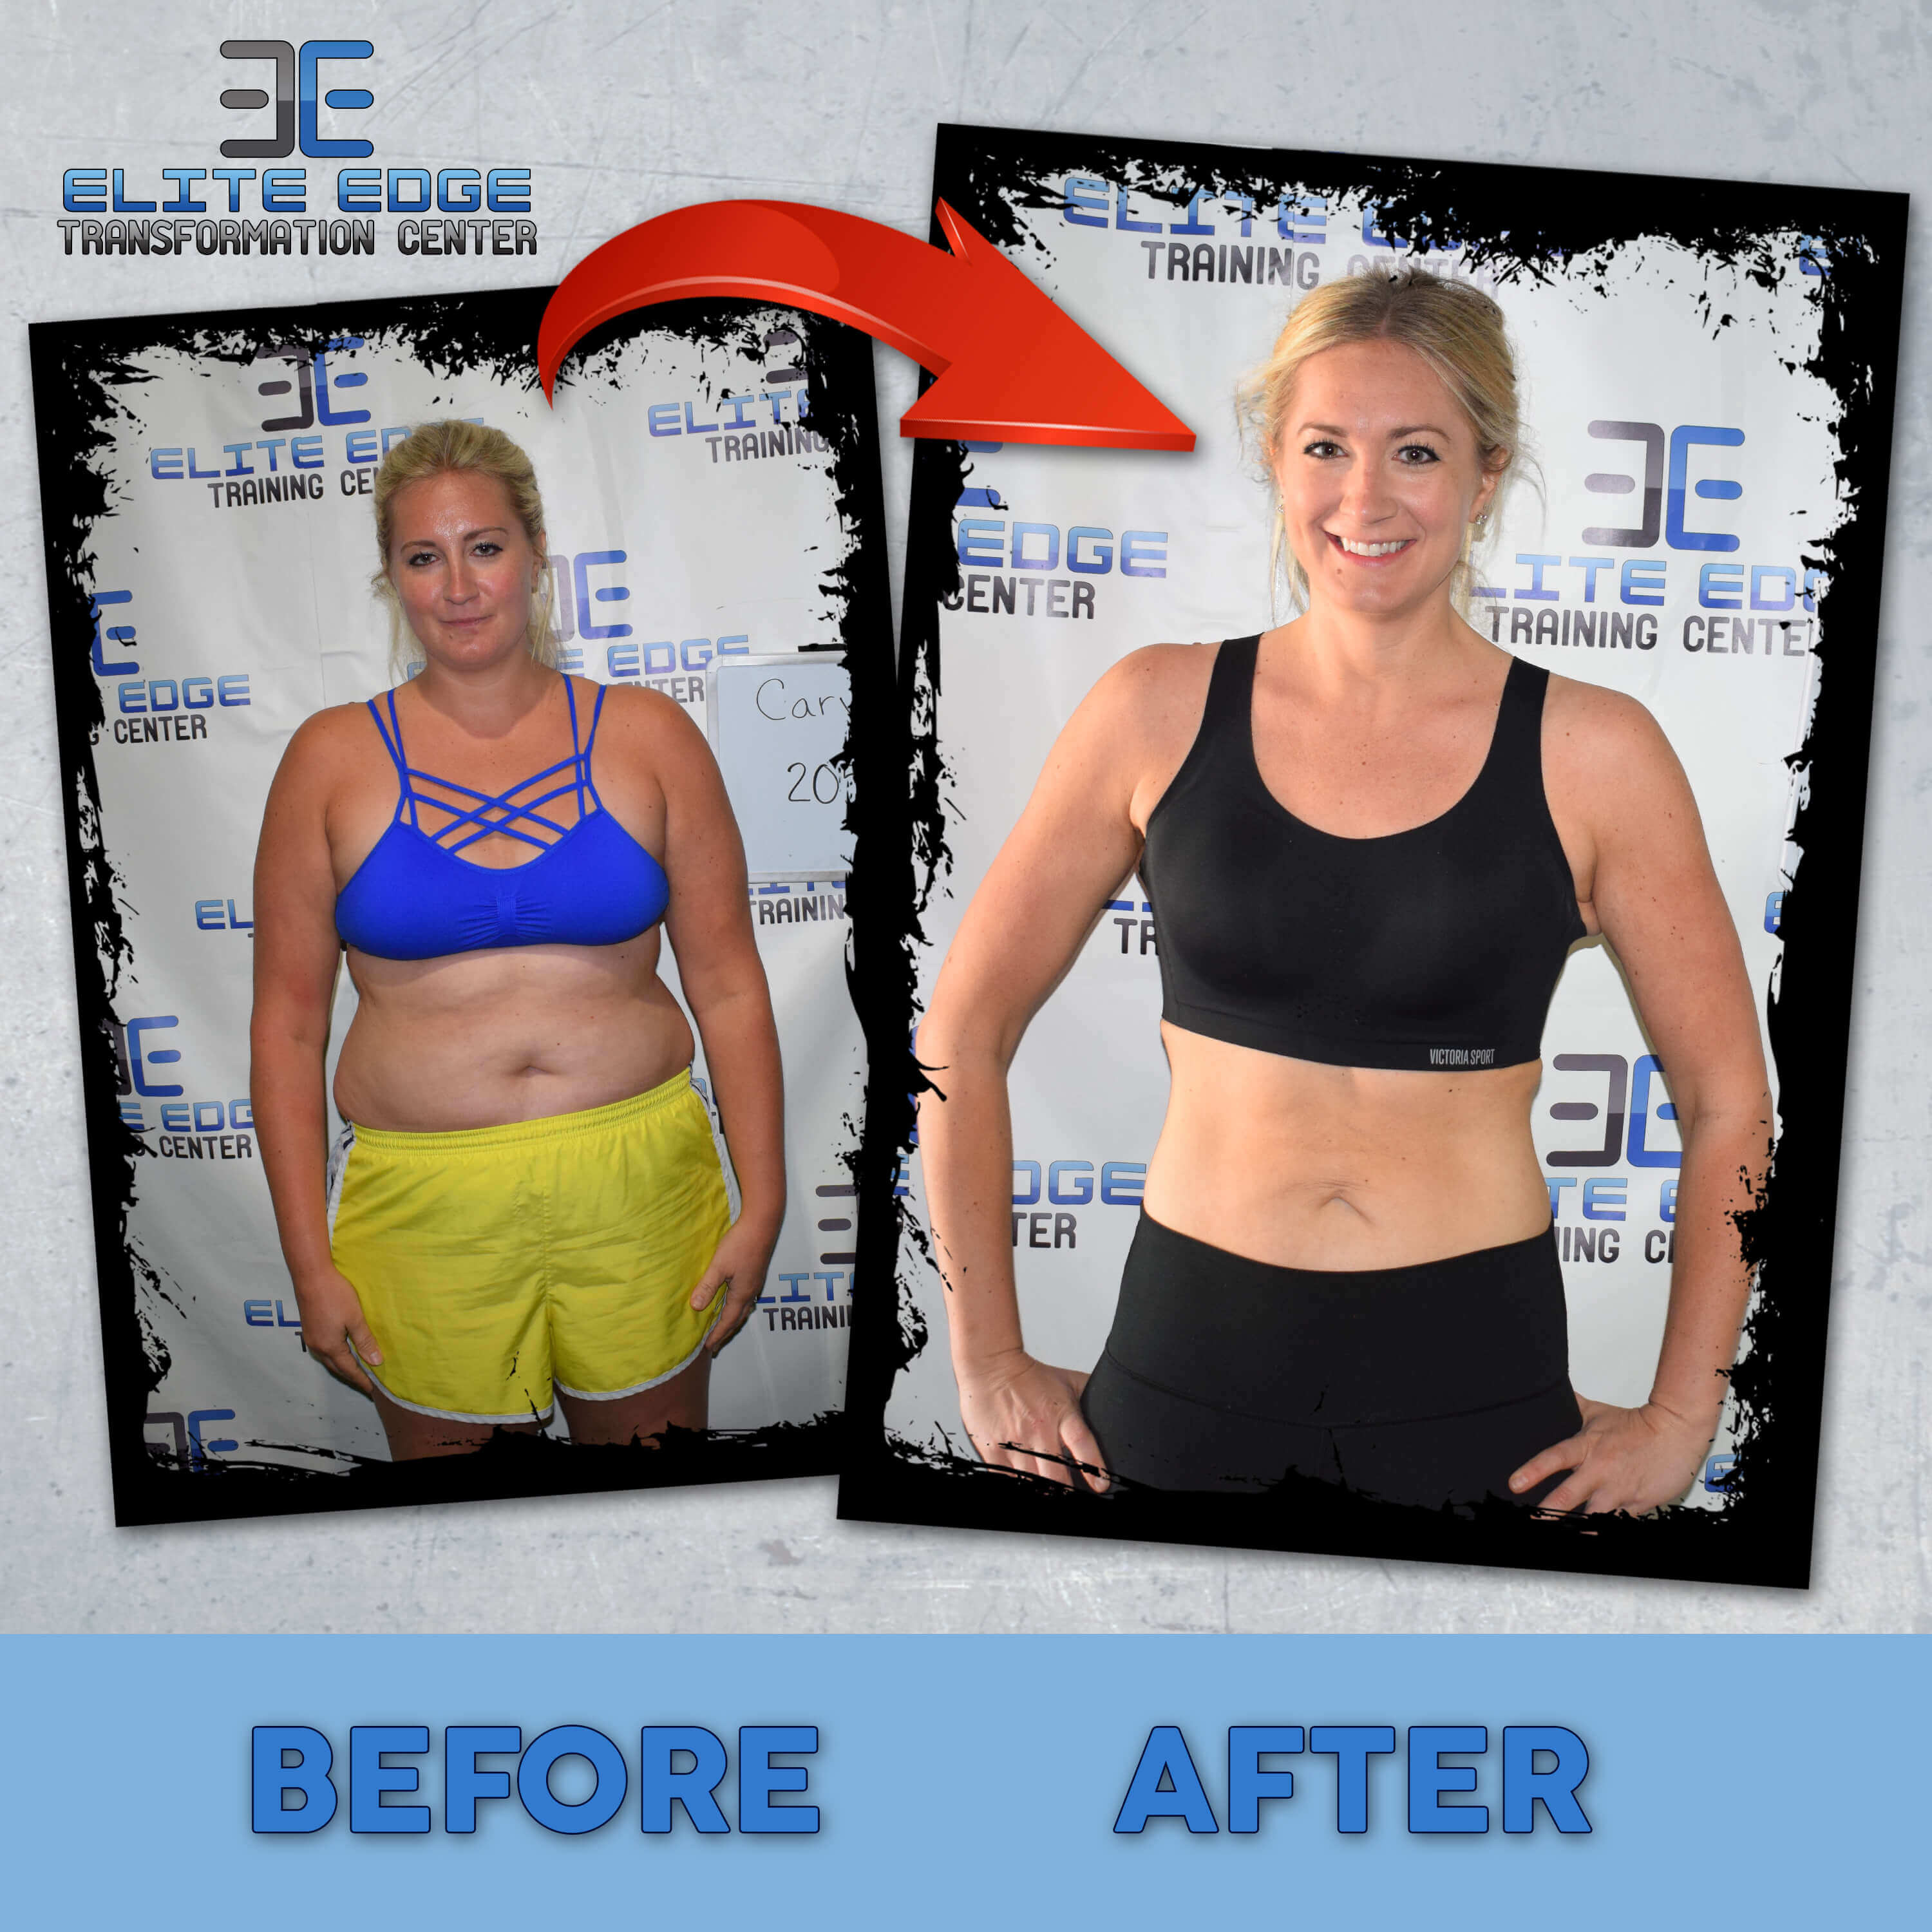 A photo of a woman before and after completing the 6 Week Challenge.